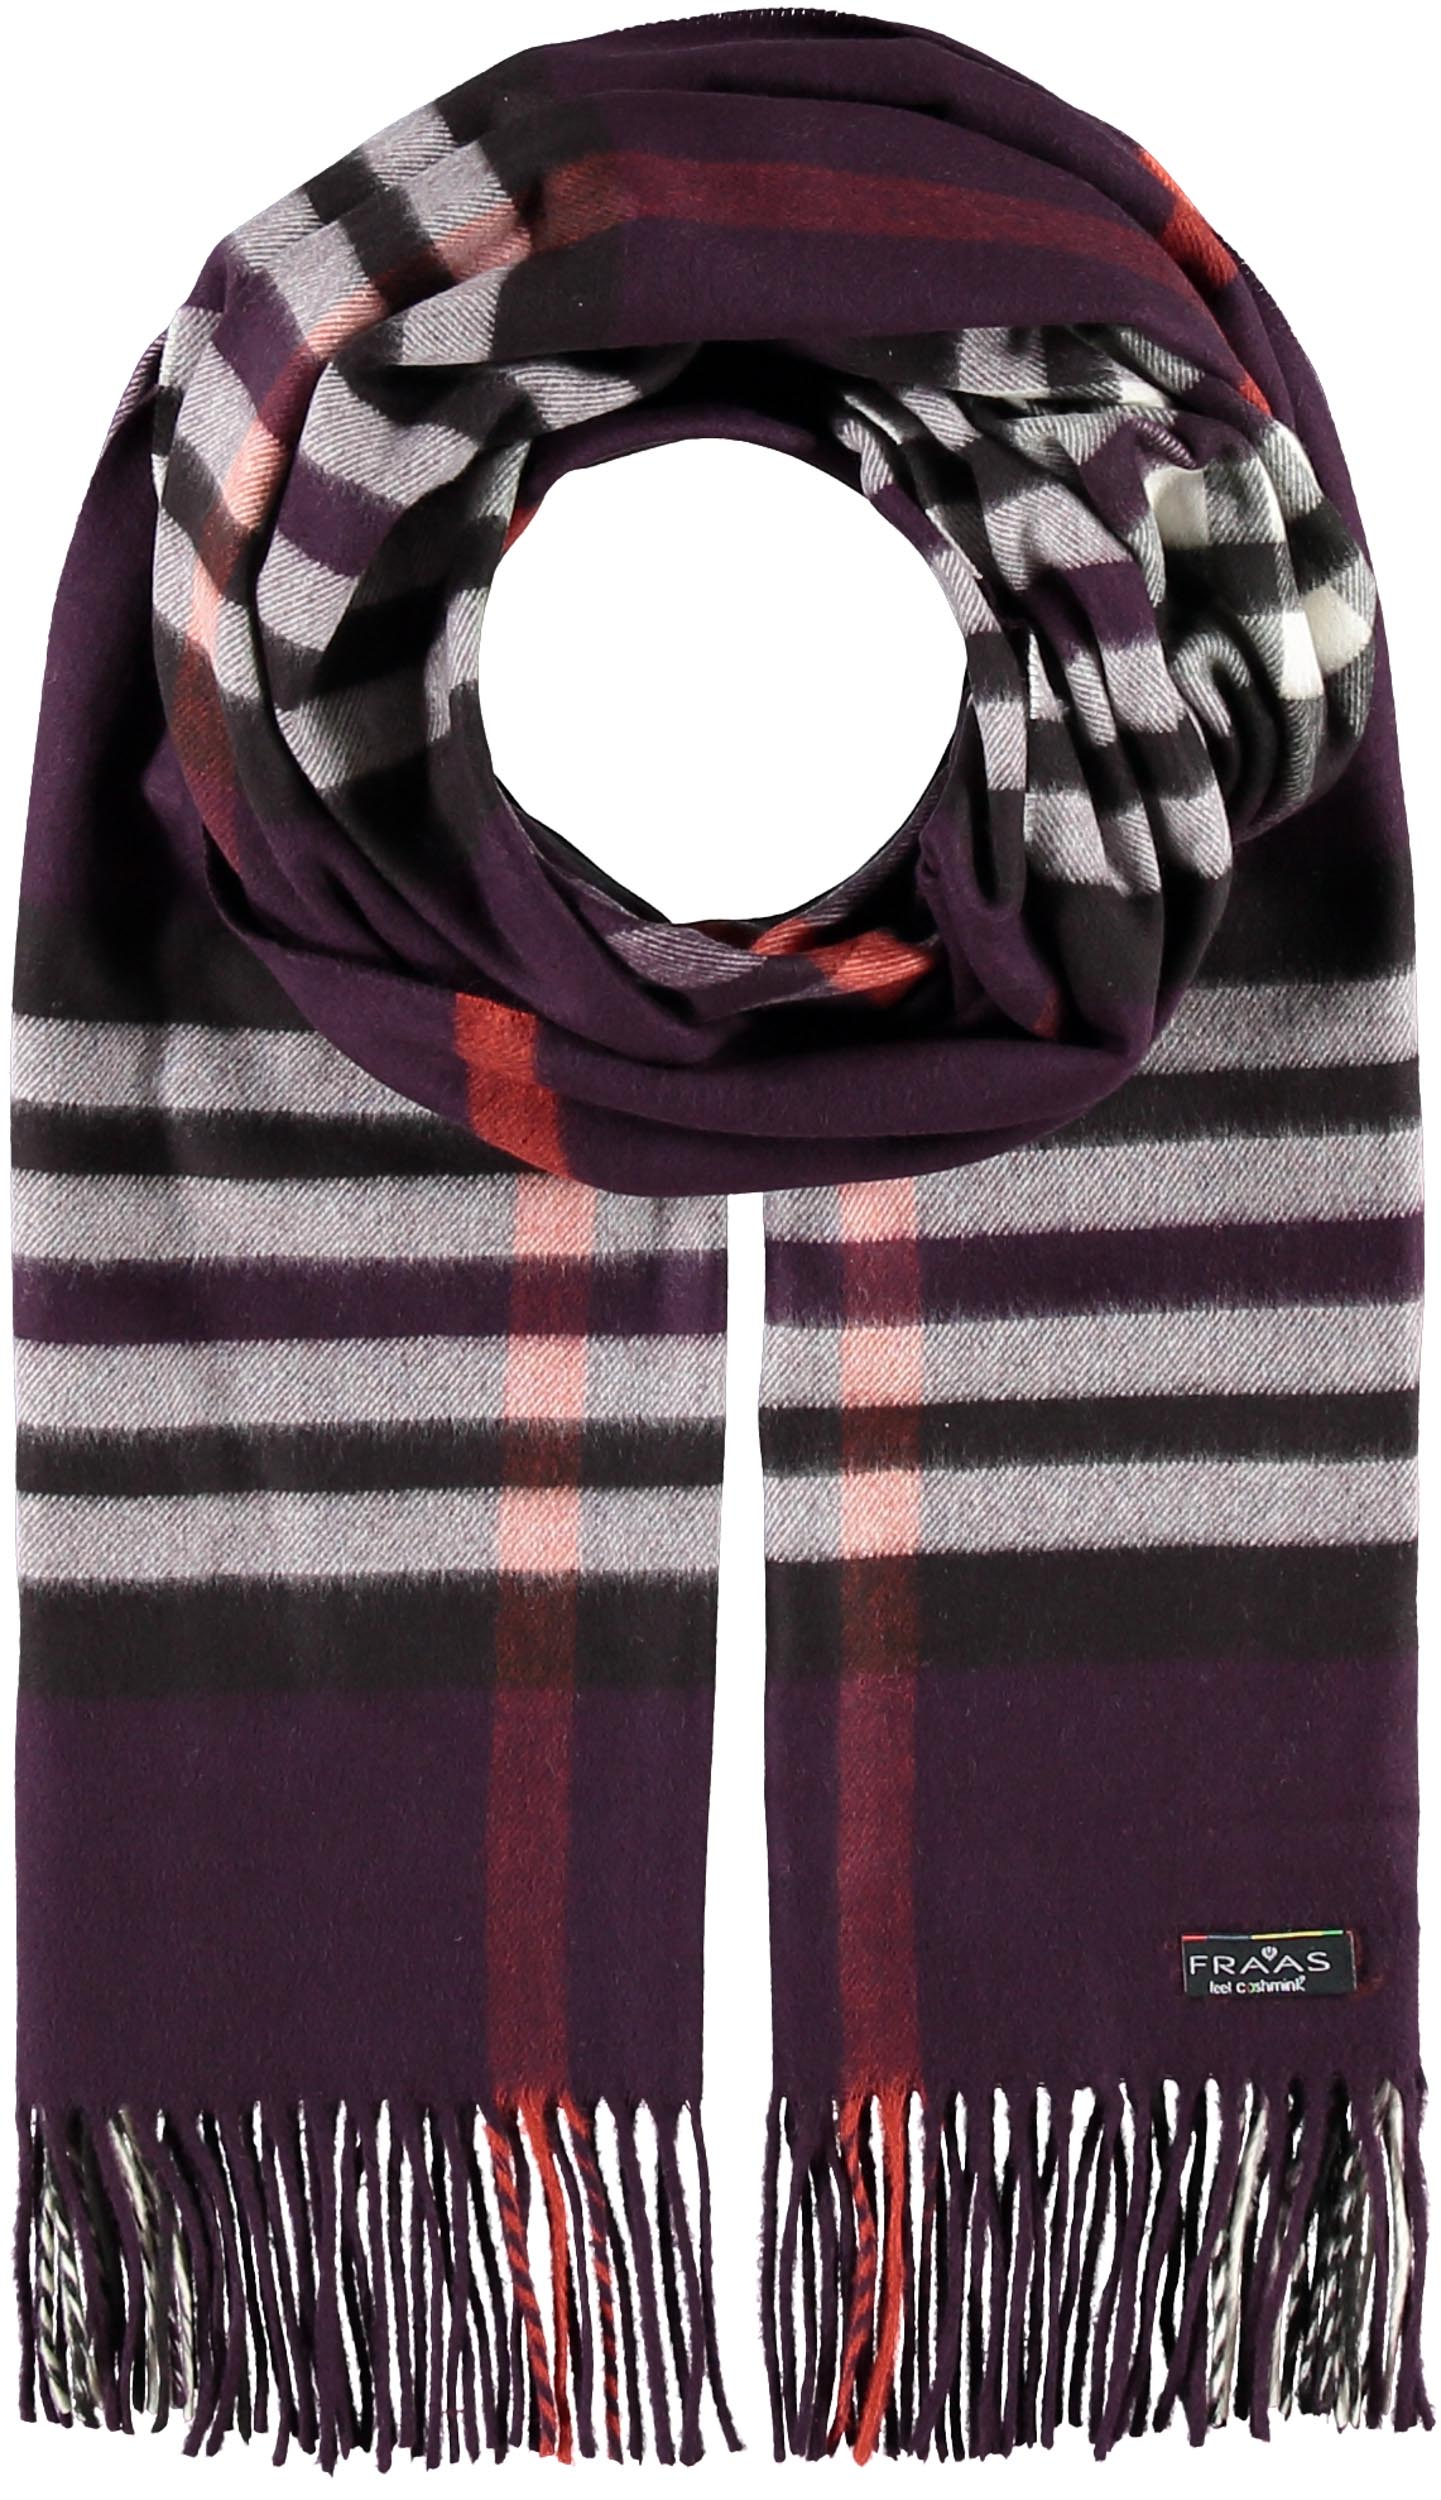 Oversized Cashmink® Exploded FRAAS Plaid Wrap